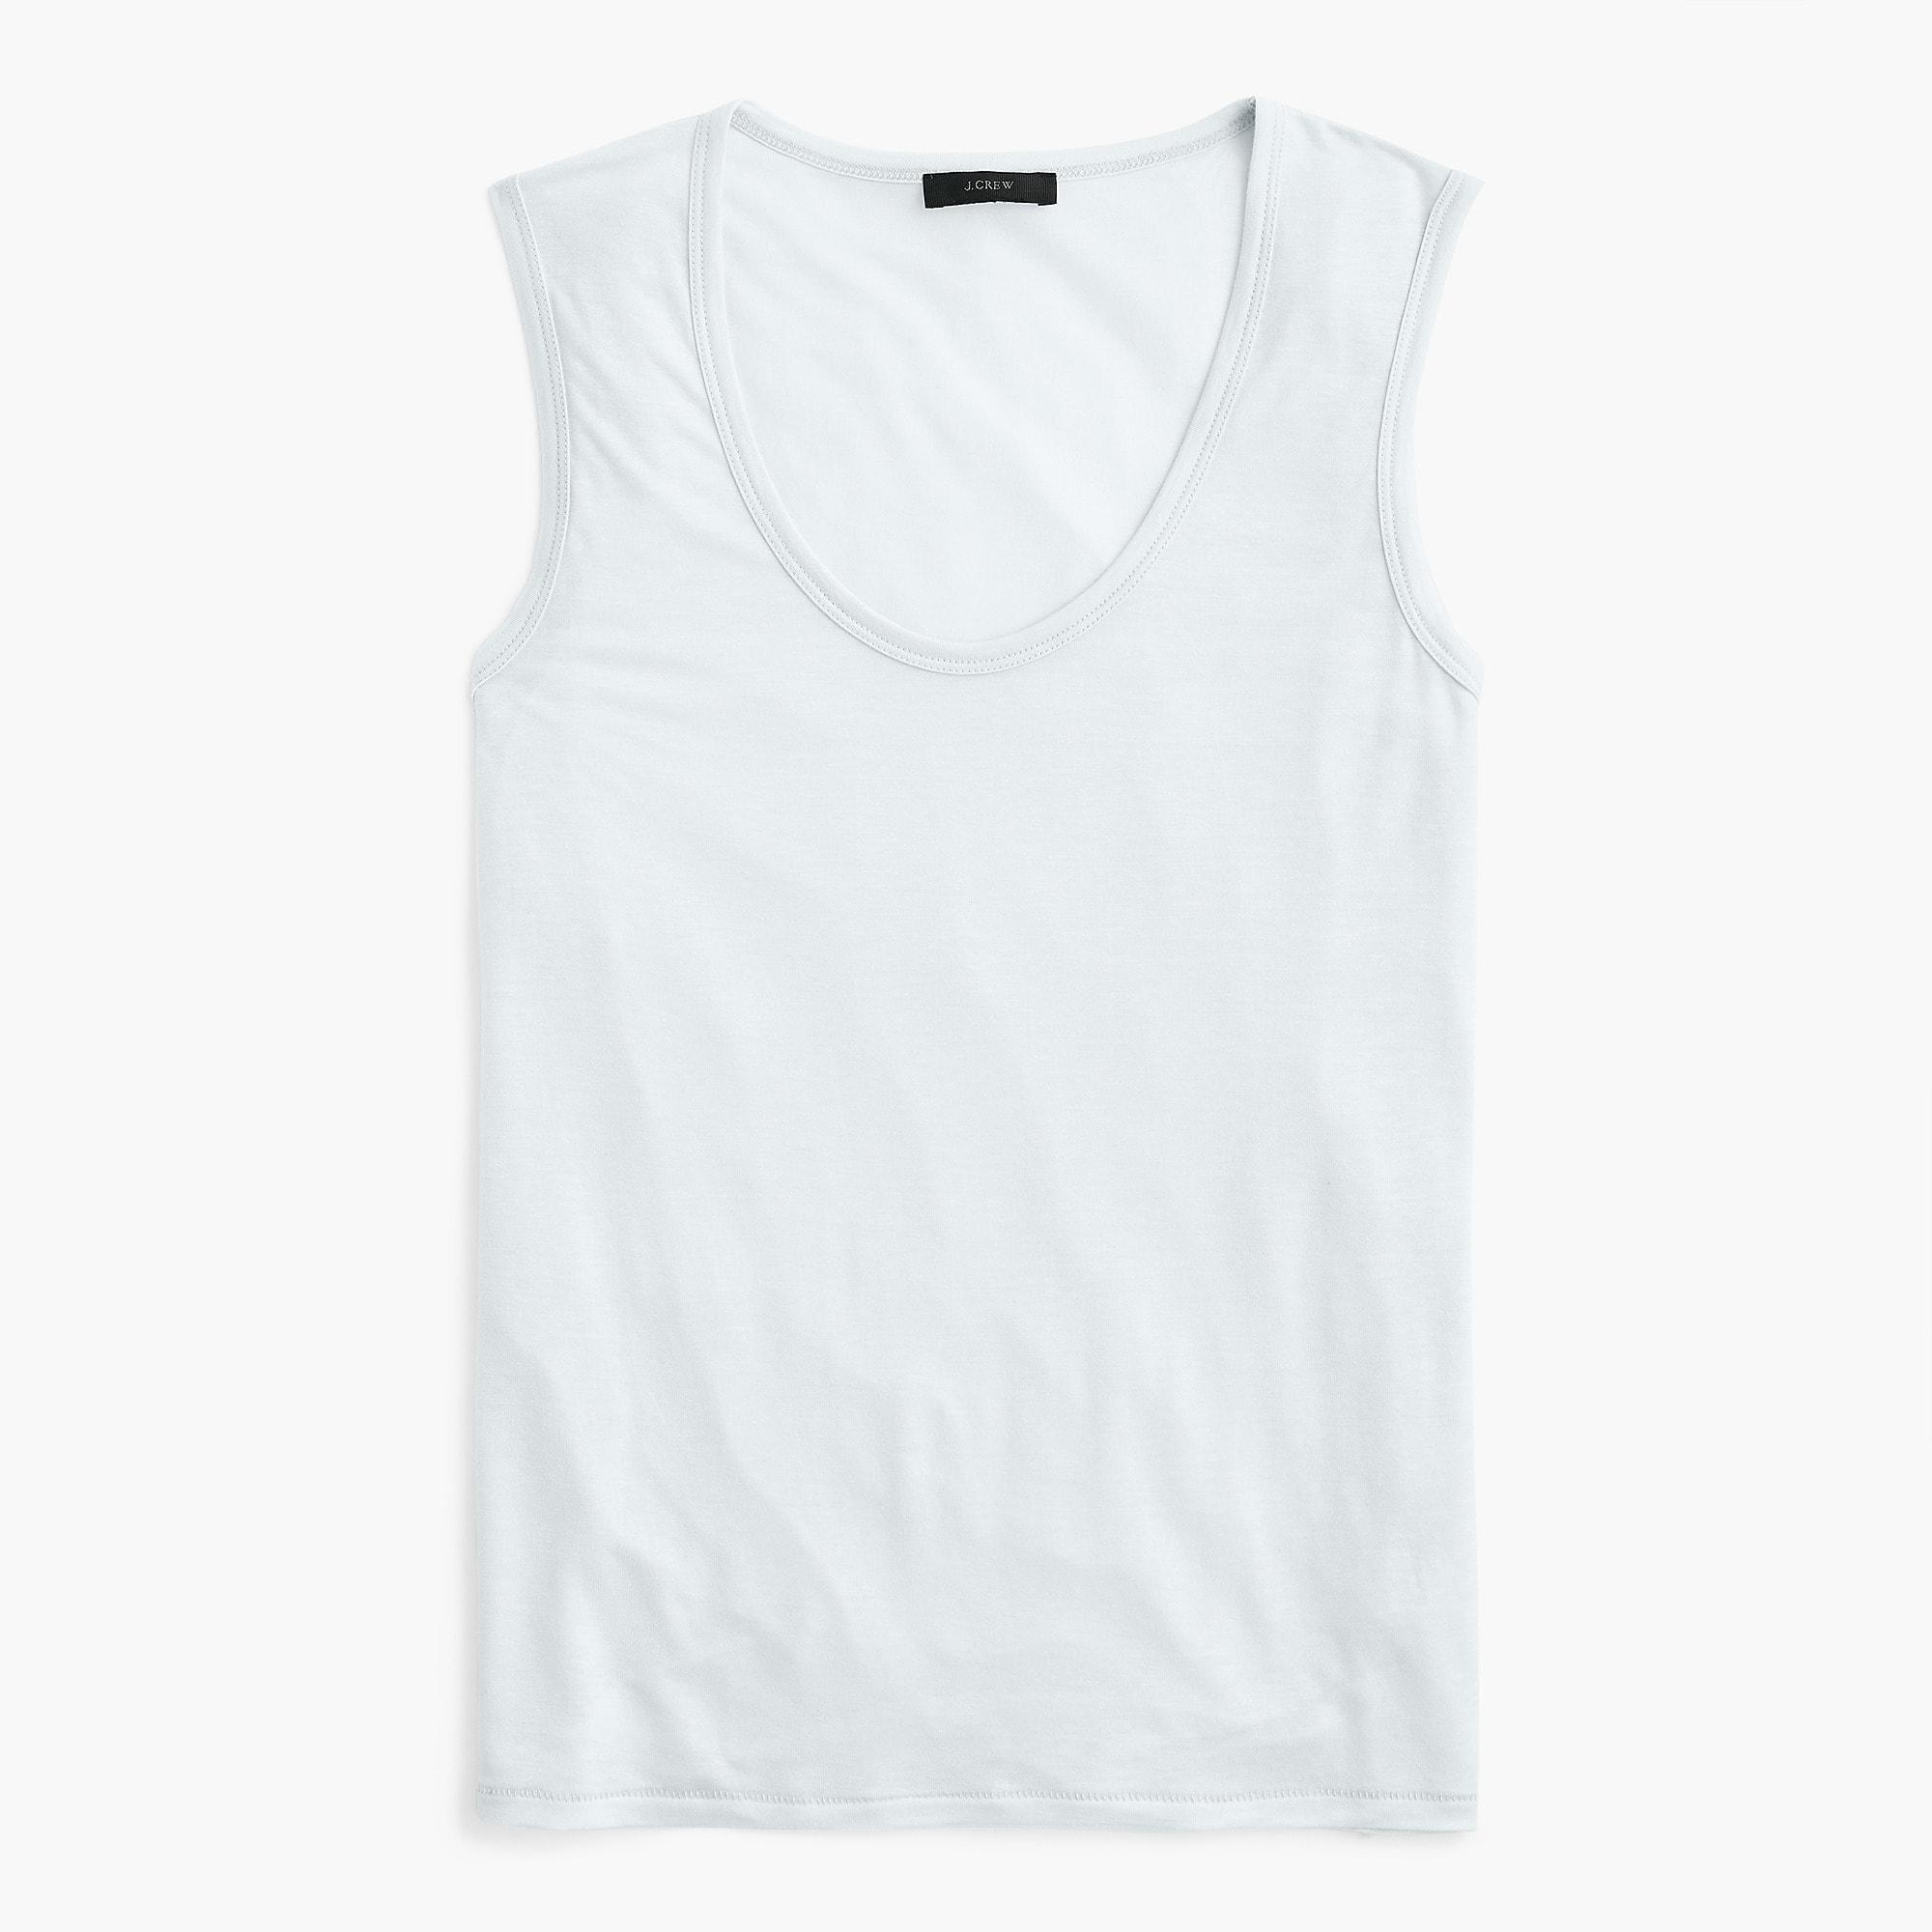 946853834d Lyst - J.Crew Drapey Tank Top in White